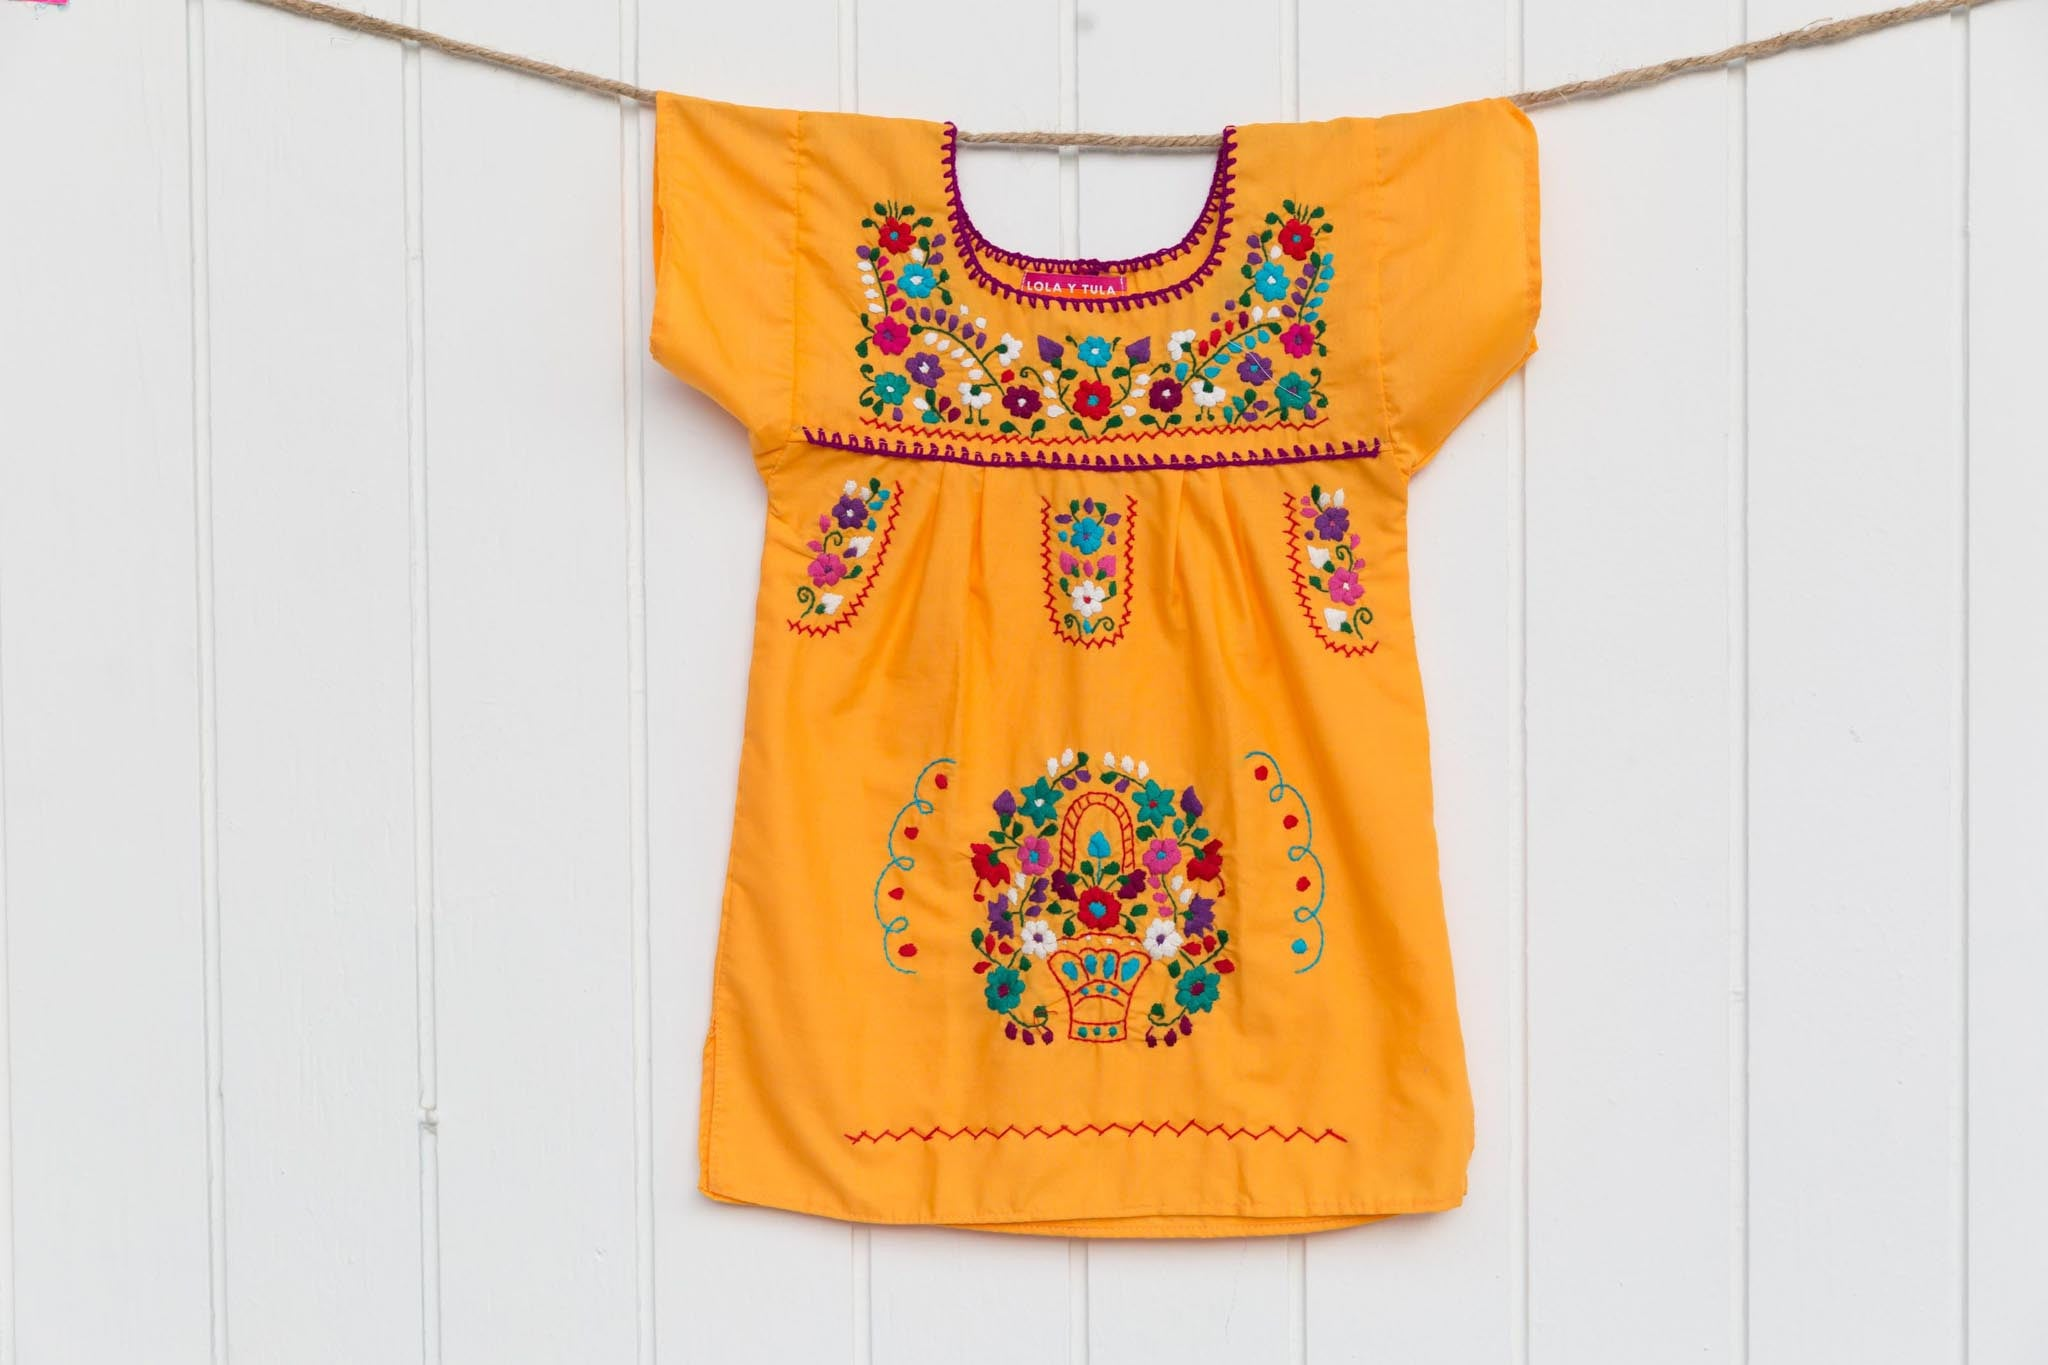 BABY + GIRLS TRADITIONAL MEXICAN DRESS 6M - 5T